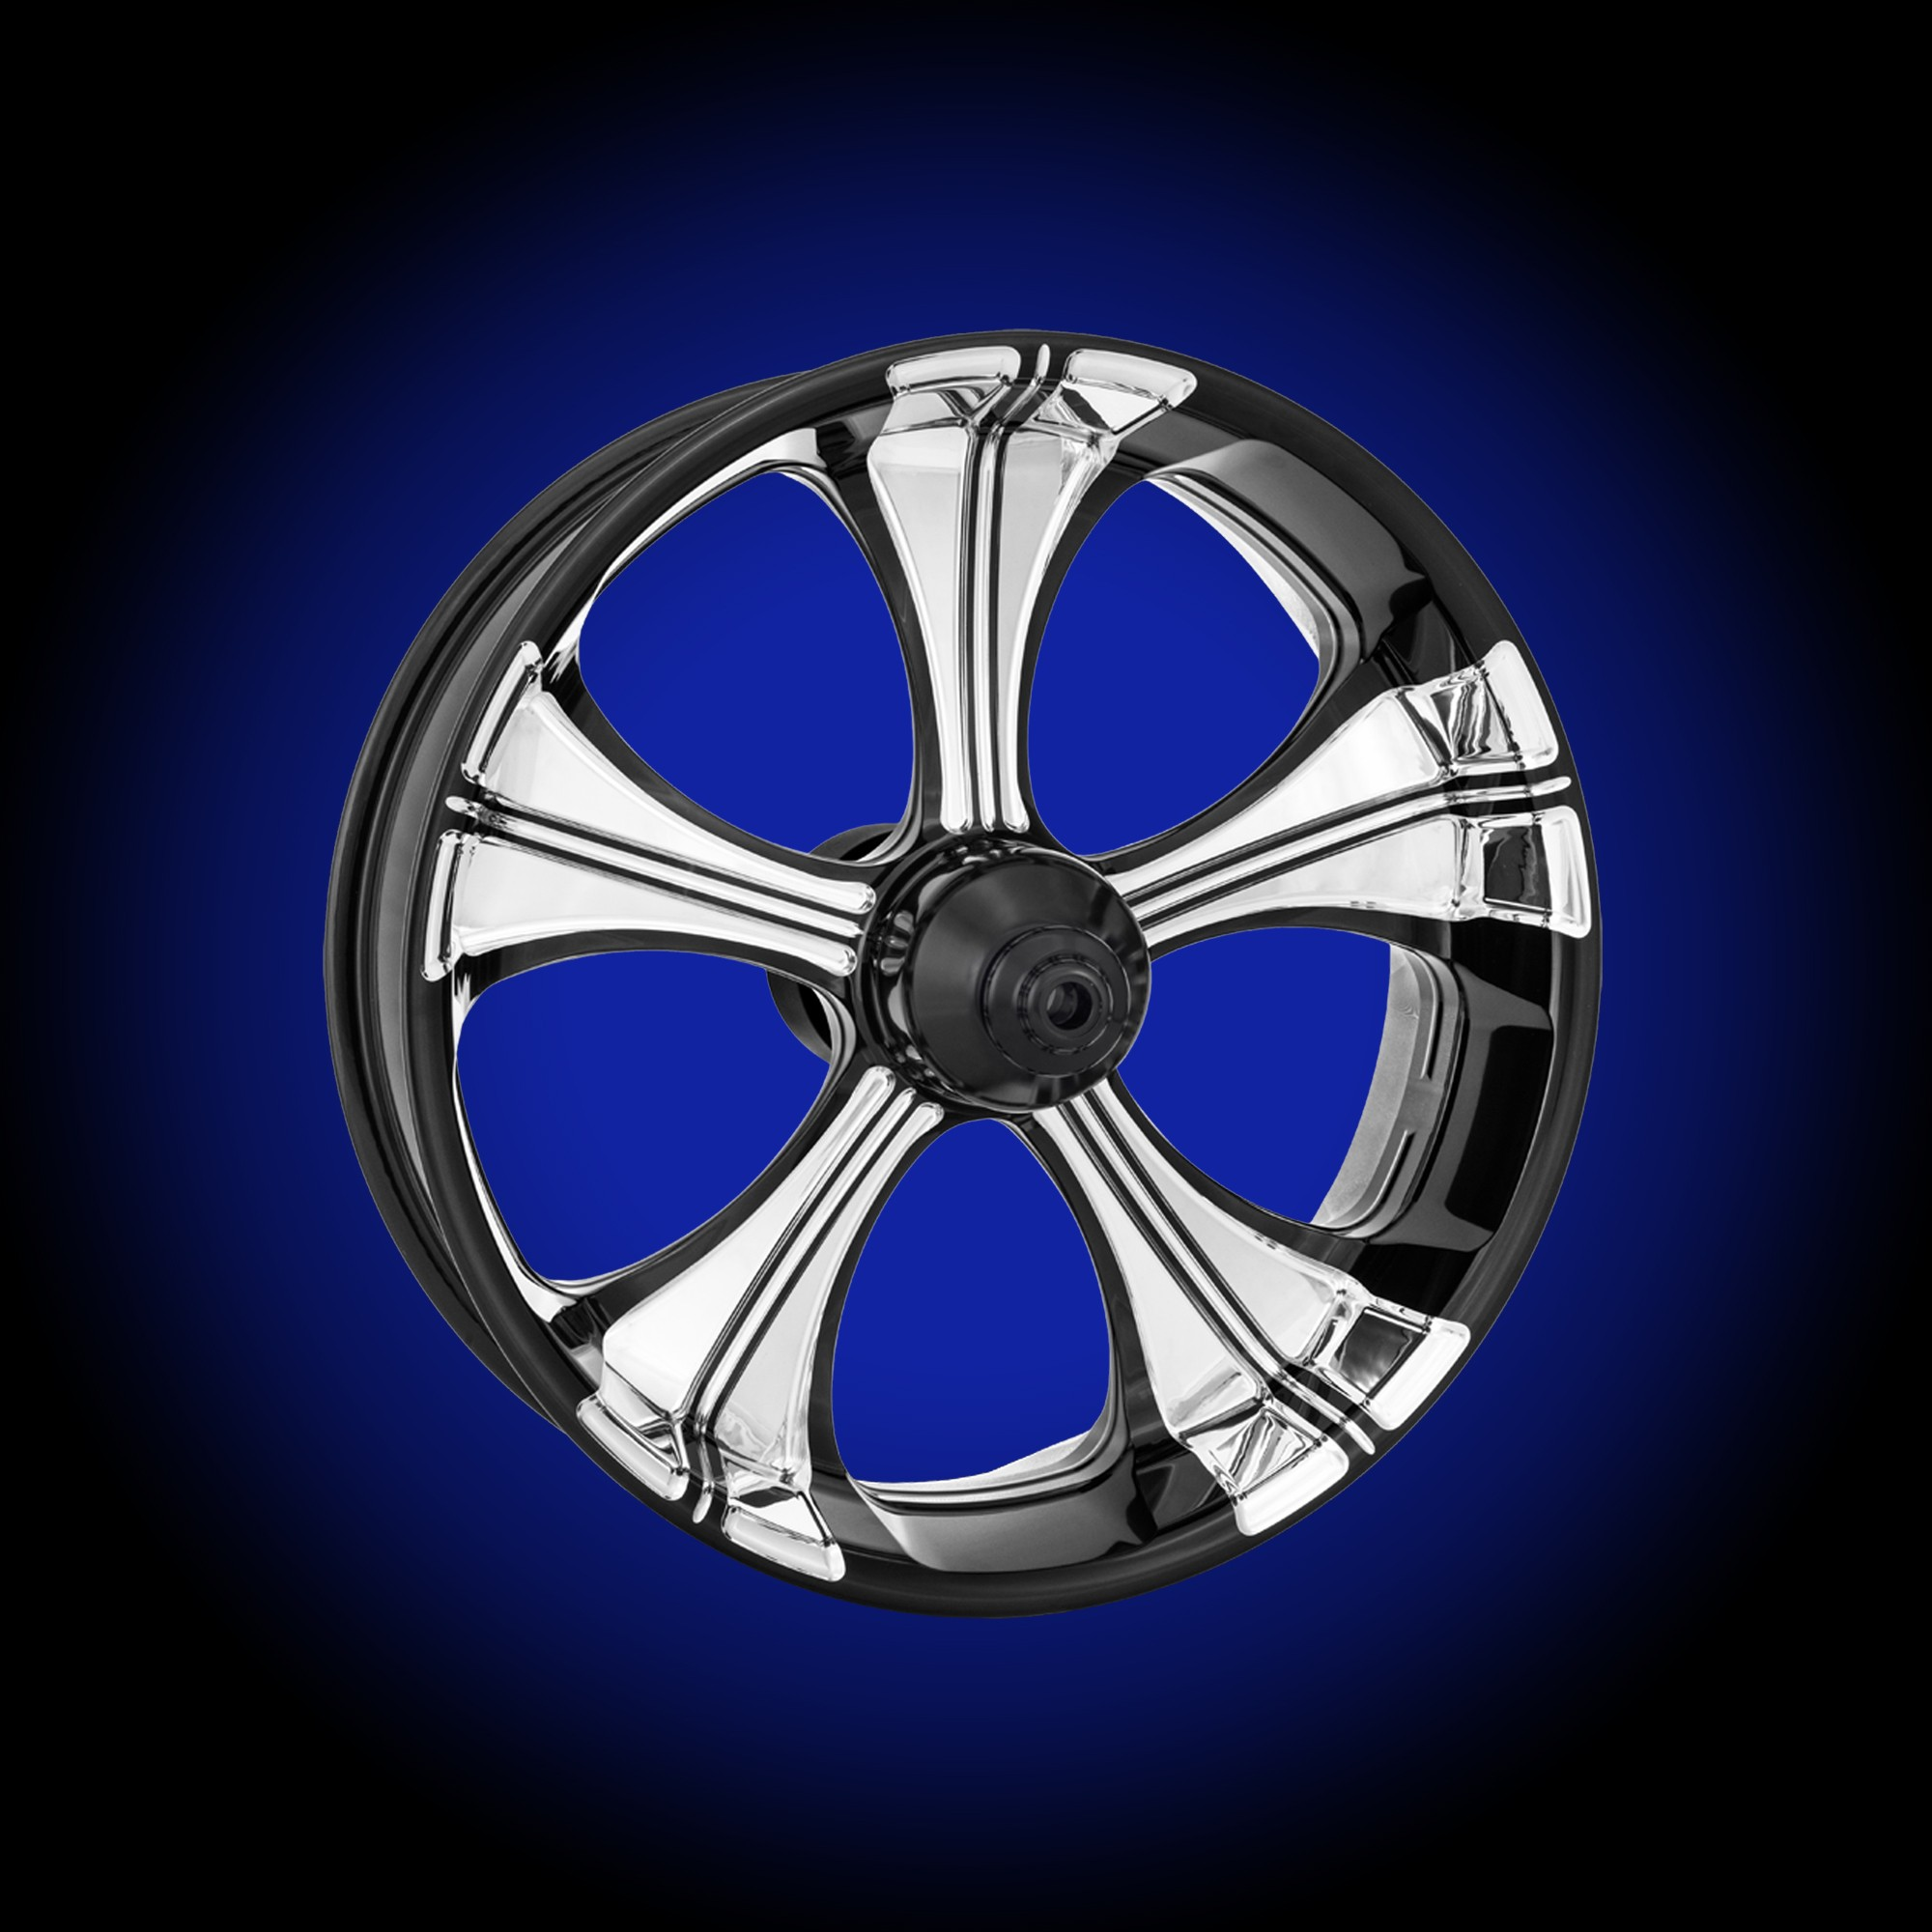 platinum parts virtue wheels touring performance machine cut contrast forum new polished